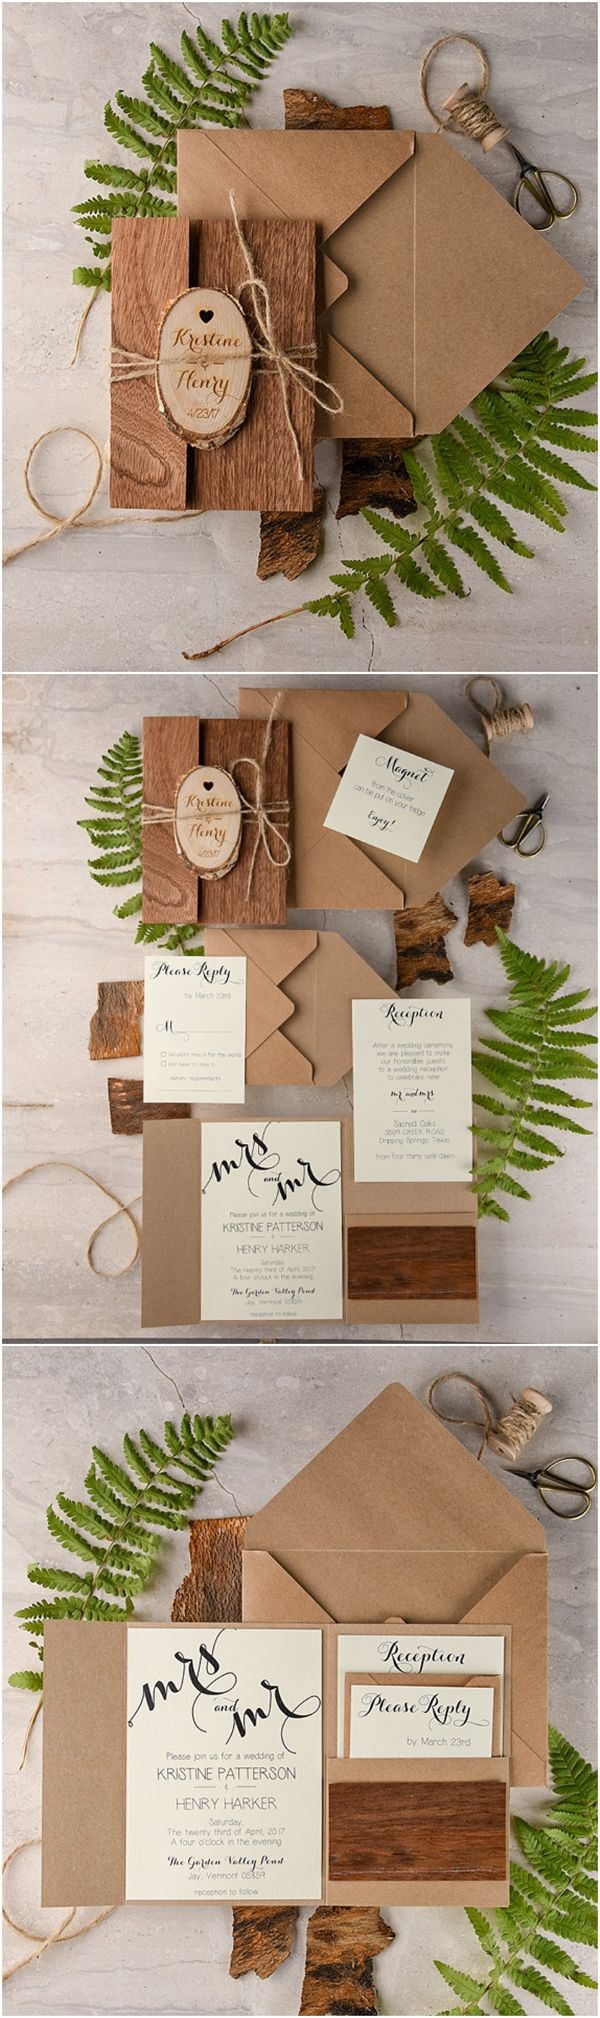 rustic wedding invitation Recycled Eco Rustic Real Wood Wedding Invitations Deer Pearl Flowers Love this especially